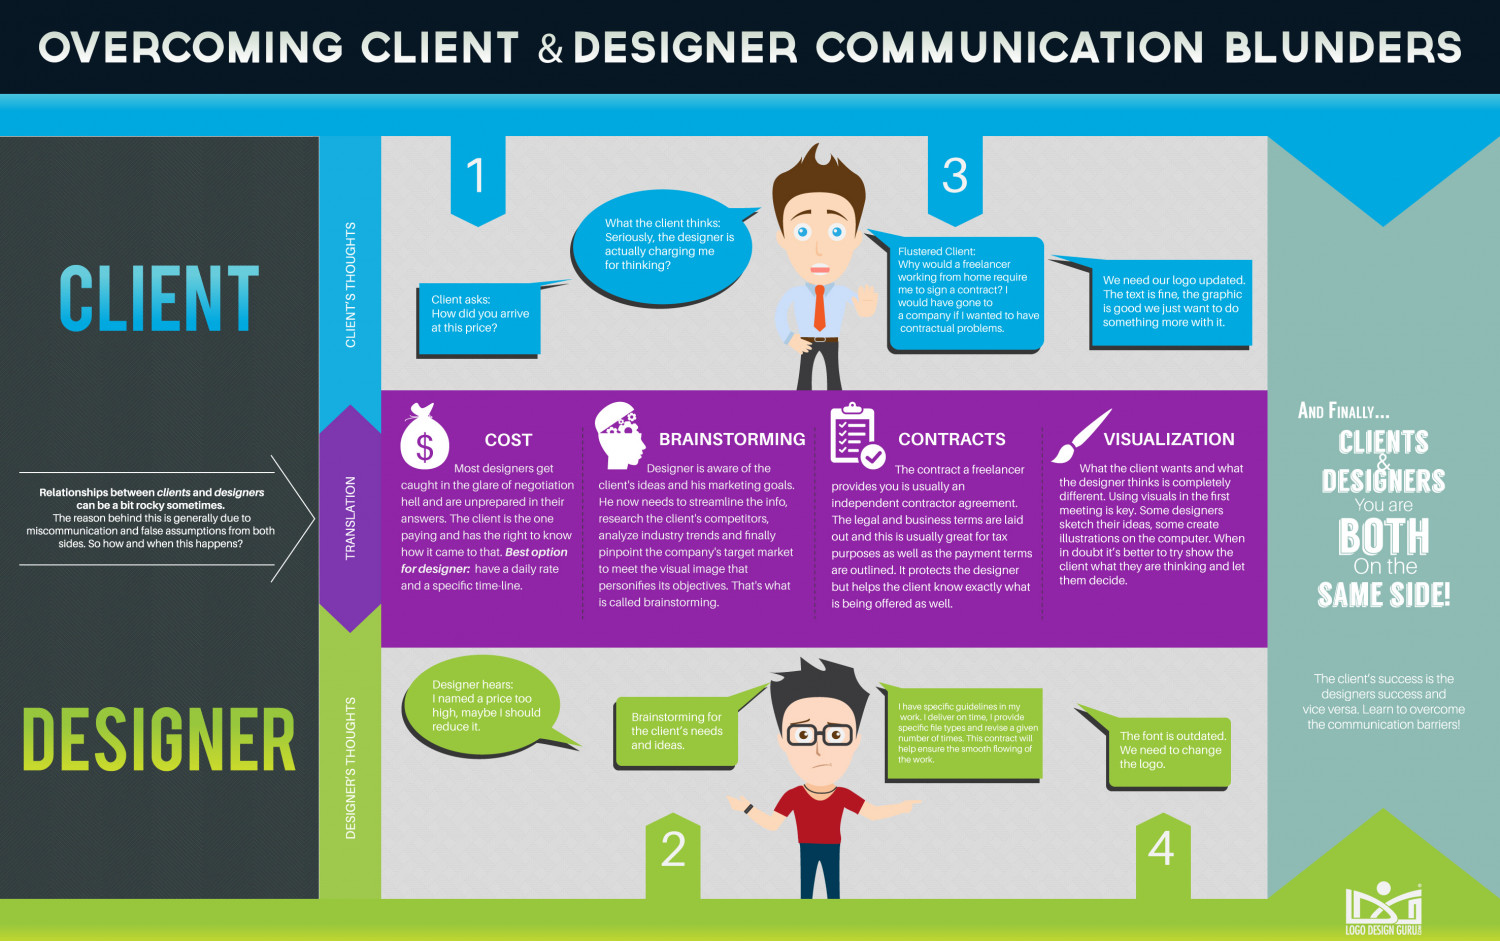 Overcoming Communication Blunders between the Designer and Client Infographic